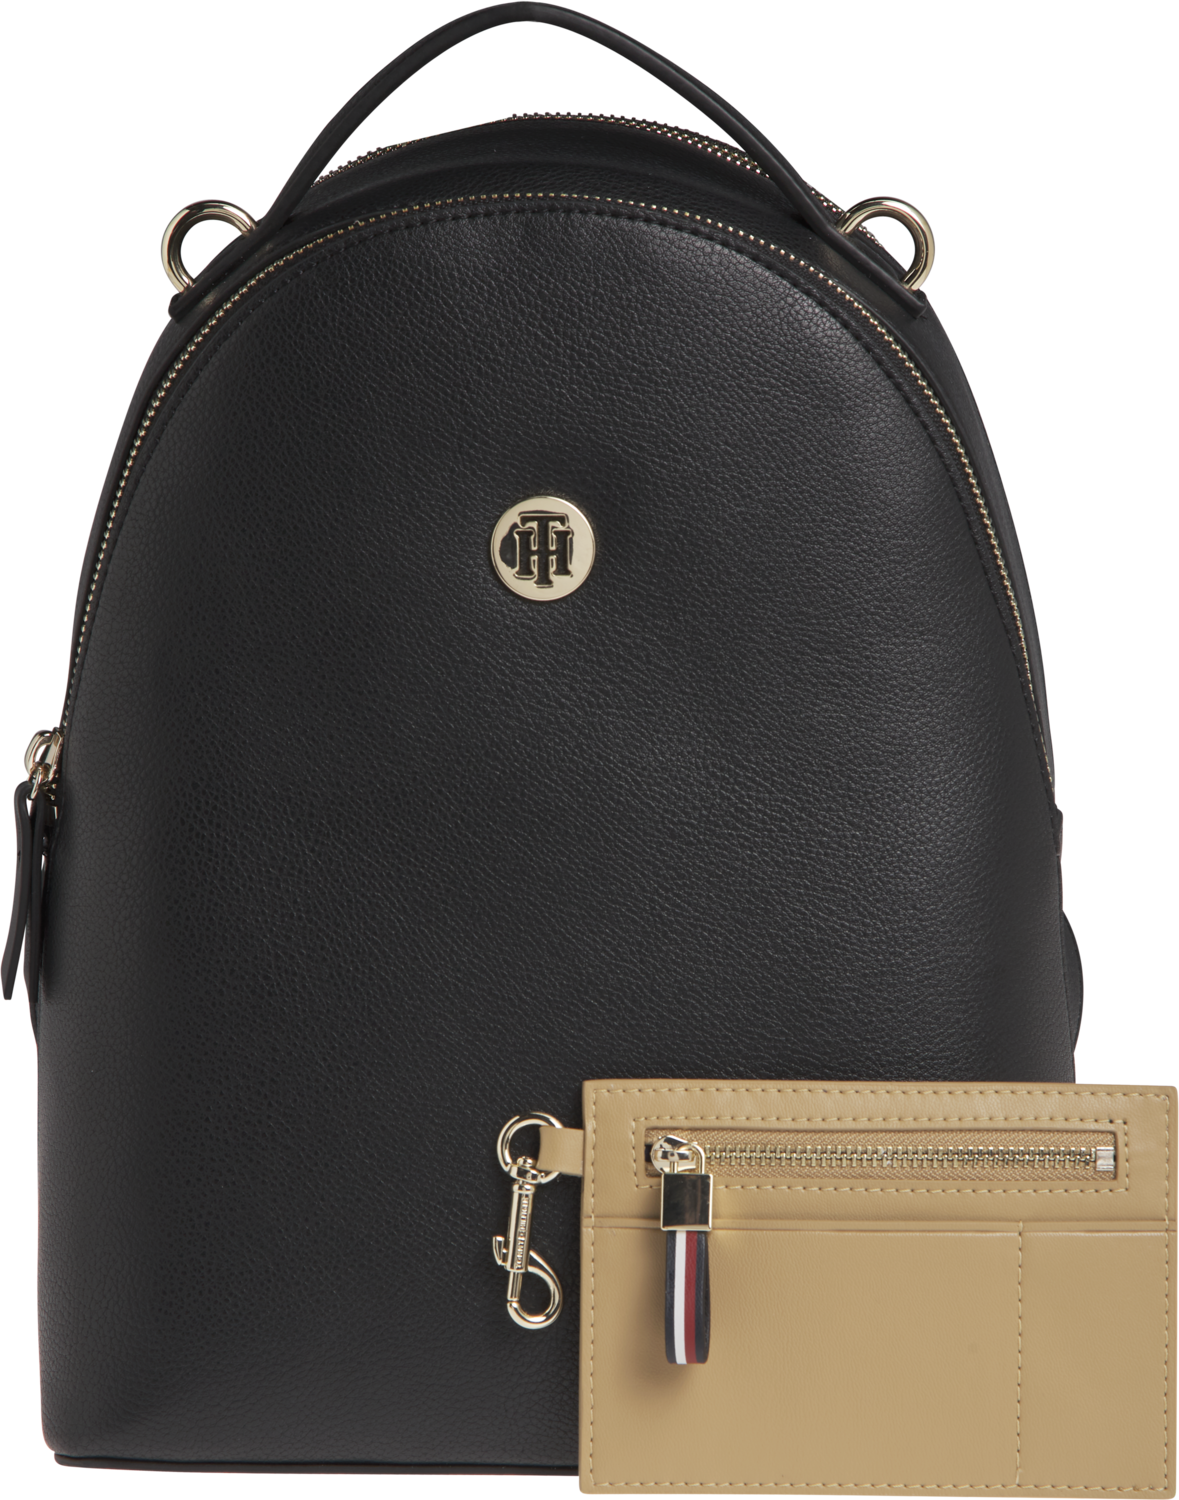 TOMMY CHARMING TOMMY BACKPACK Black